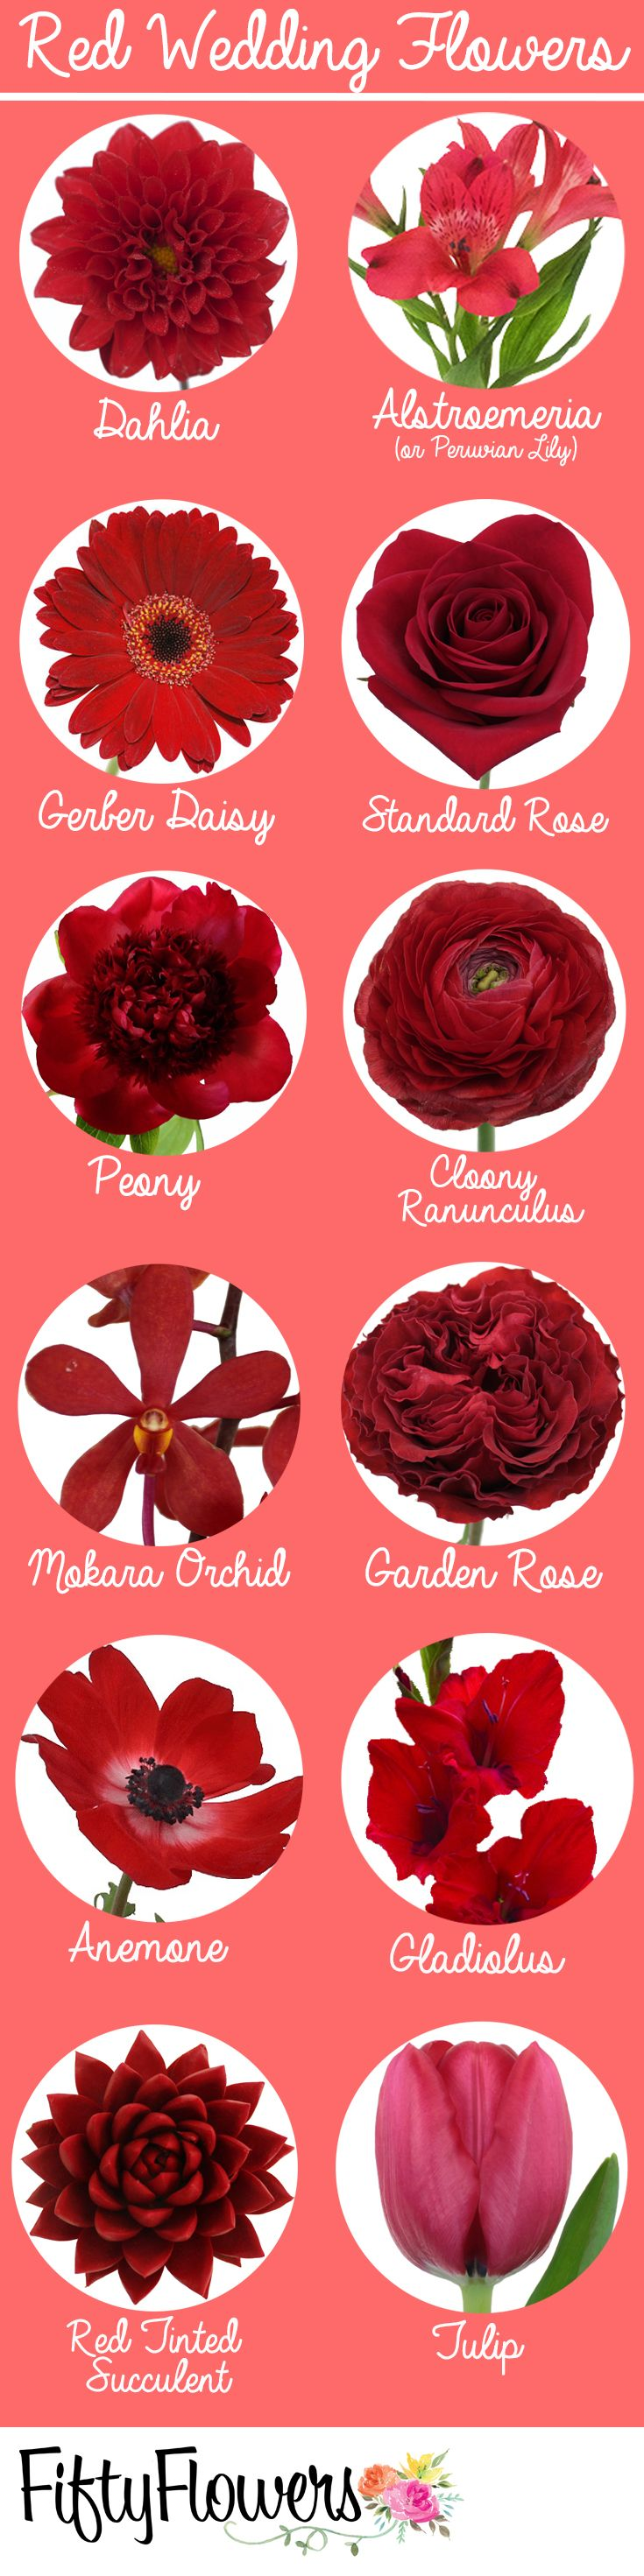 Shop for flowers by color at FiftyFlowers.com!